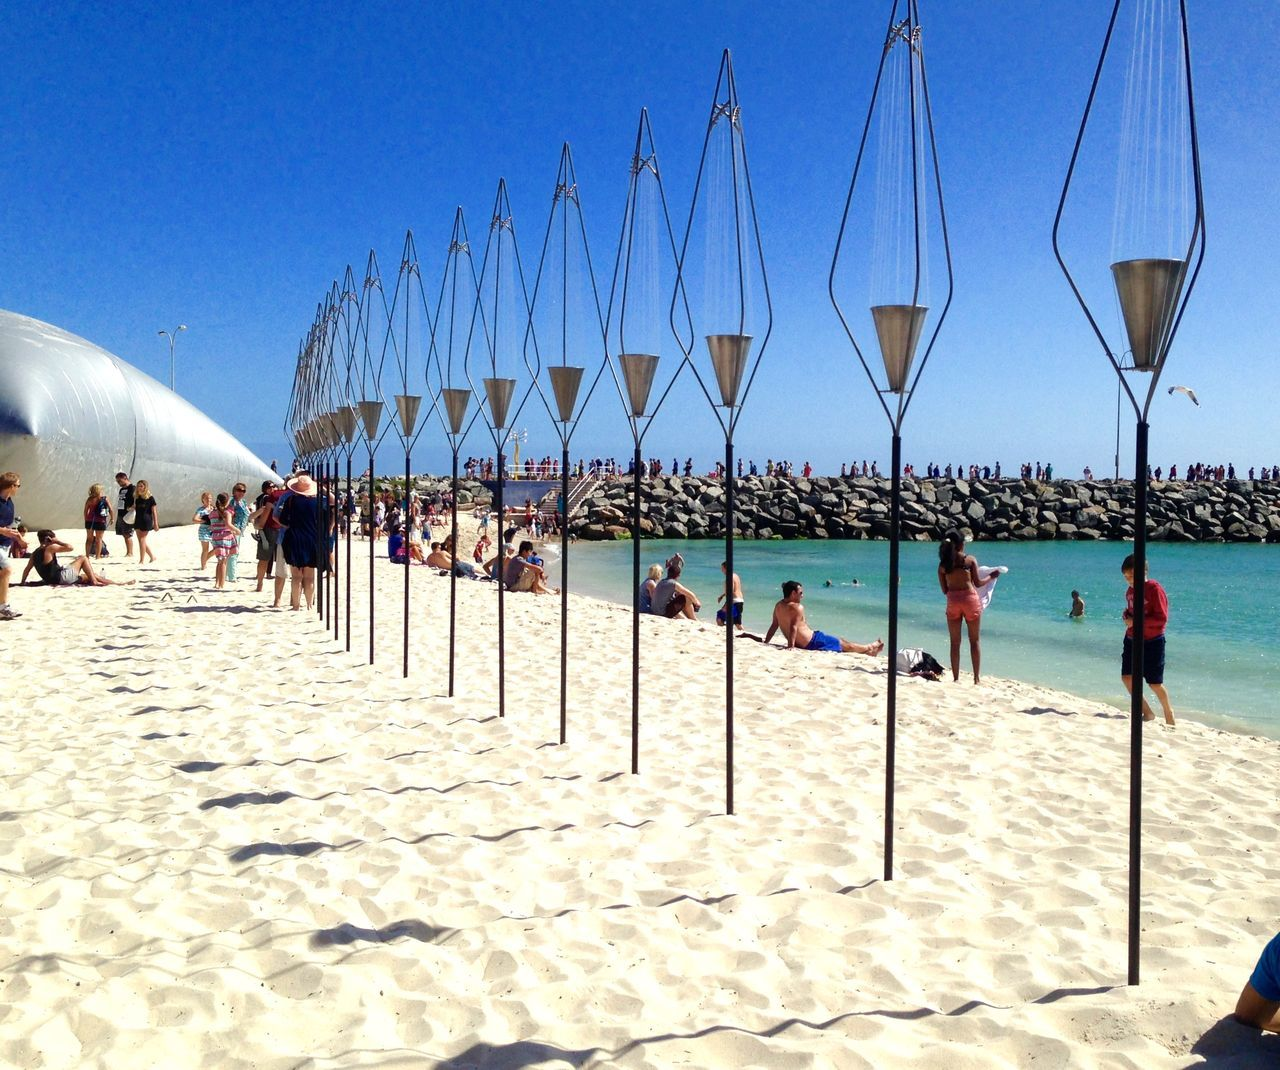 Sculpture by the Sea: Cottesloe Beach-circa March 2014-Metal Art in a Row Western Australia Weekend Activities Vacations Sculptures By The Sea Sculpture Recreational Pursuit Pole Perth Outdoors Ocean Incidental People Expressive Sculpture Enjoyment Cottesloe Beach Connection Interactive  Built Structure Beach Art Event Art Abstract Poles On Beach Row Of Poles Metal Sculpture Metal Art